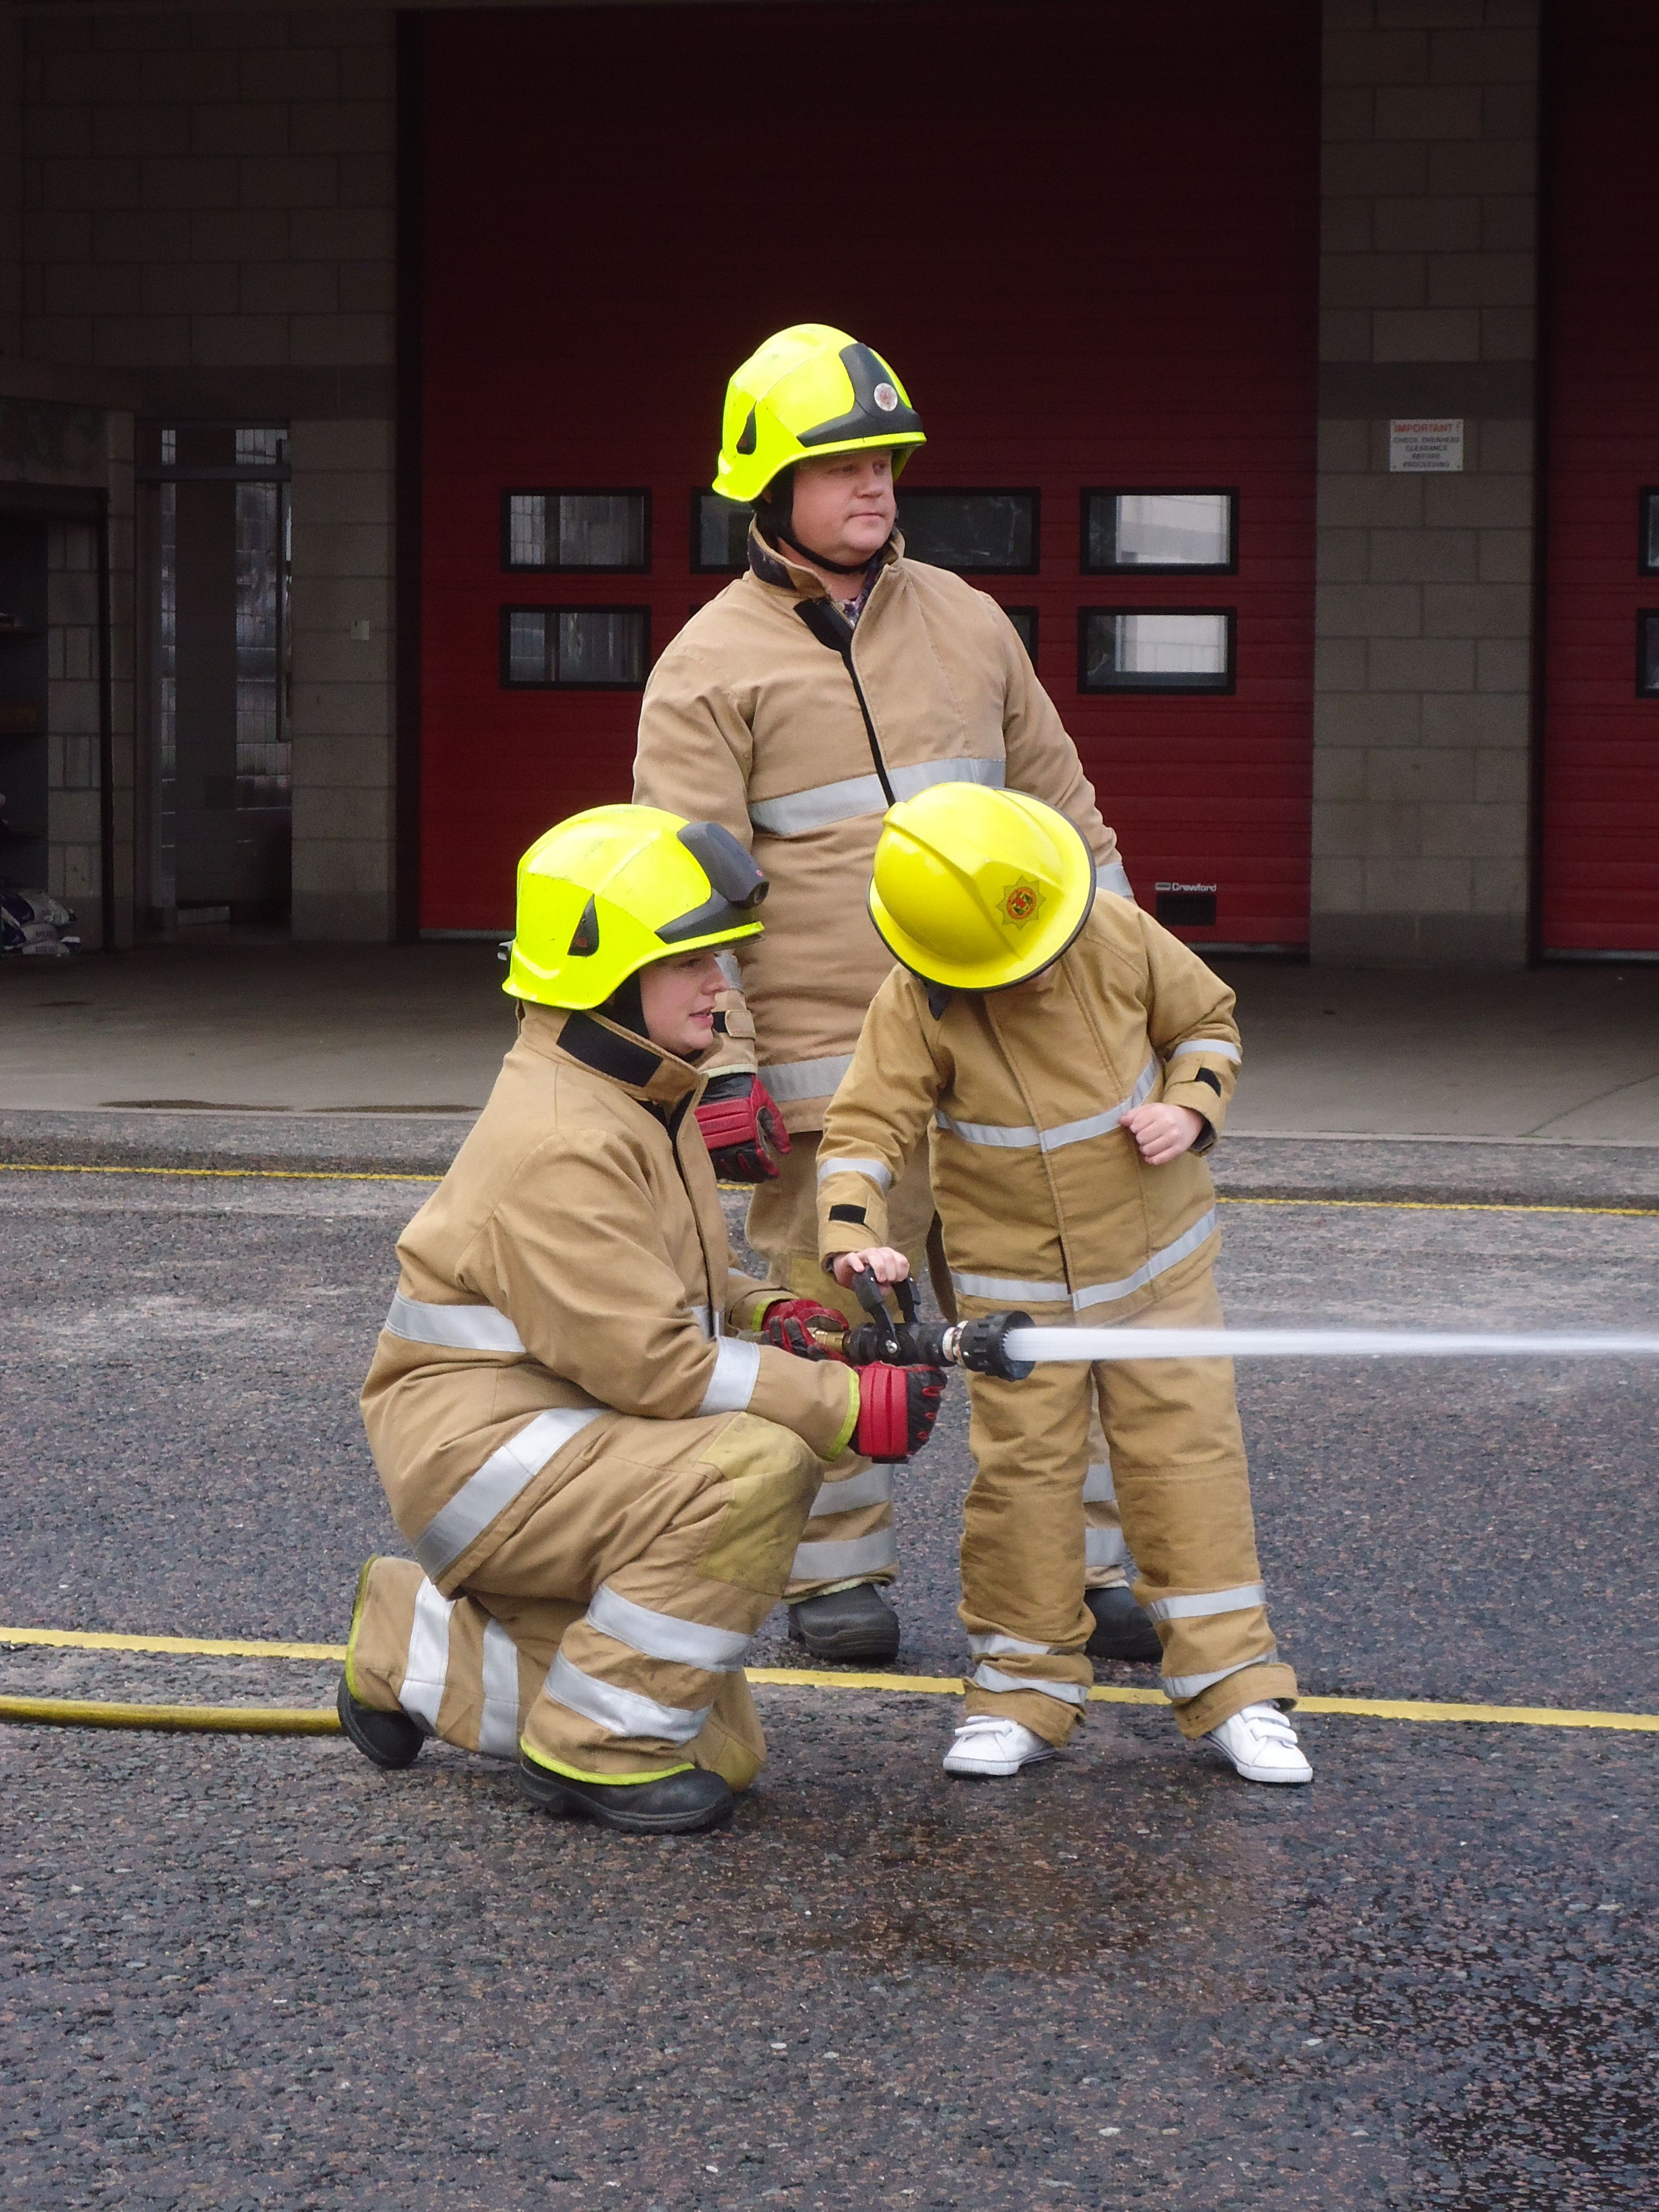 Central Fire Station in Aberdeen receives a star visitor